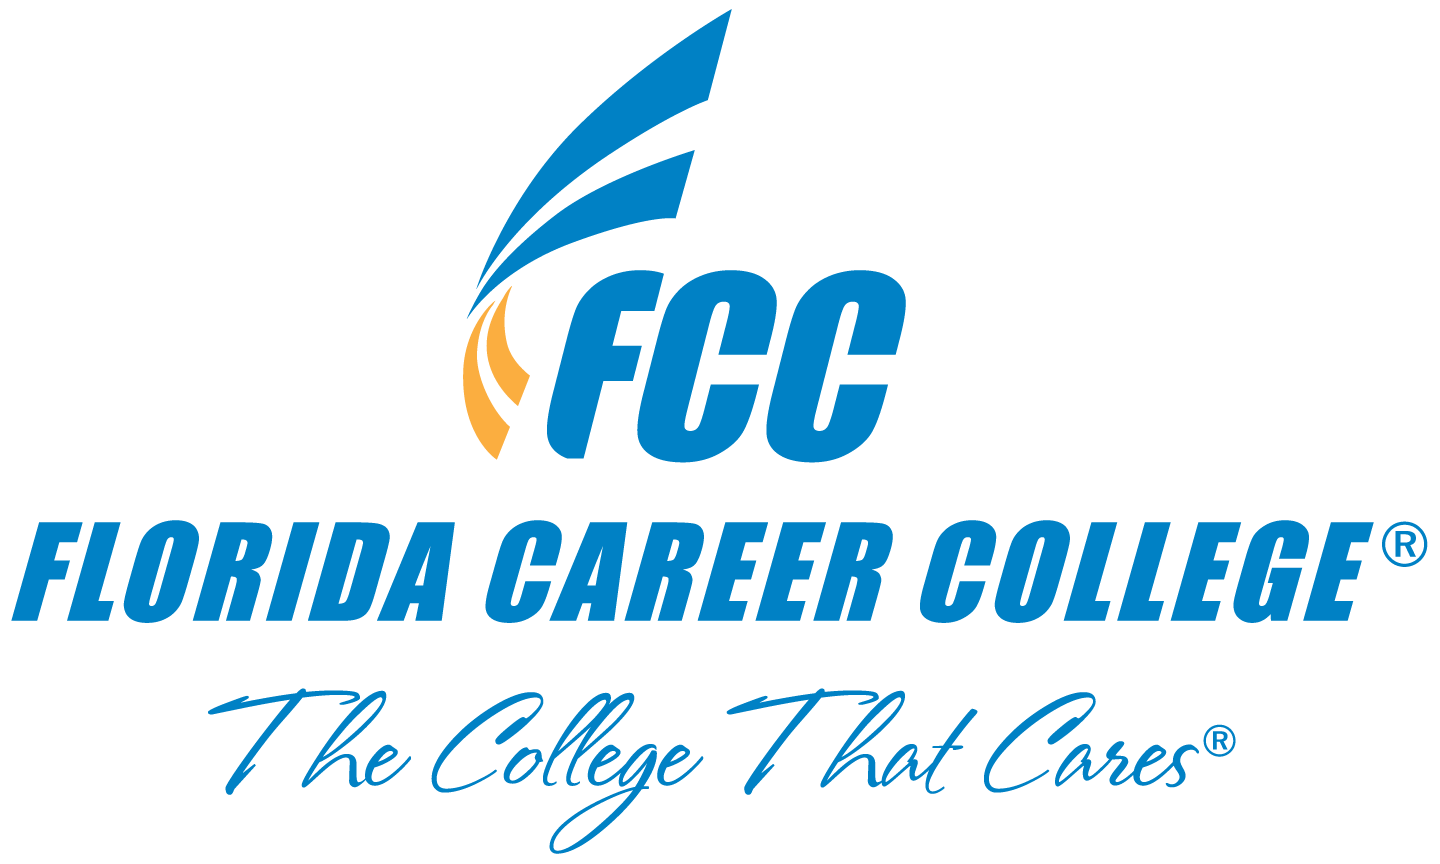 Florida Career Collegehialeah Now Offering Cosmetology. Prime Loan Interest Rate Loan For Classic Car. Walnut Wood High School Comcast New Hampshire. Tax Sheltered Annuity Withdrawal. South Central Mental Health Lost A Filling. Mortgage Refinancing Canada Planet Tan Hours. What Makes A Good Business Analyst. How To Get Medical Coding Certification. Program And Portfolio Management